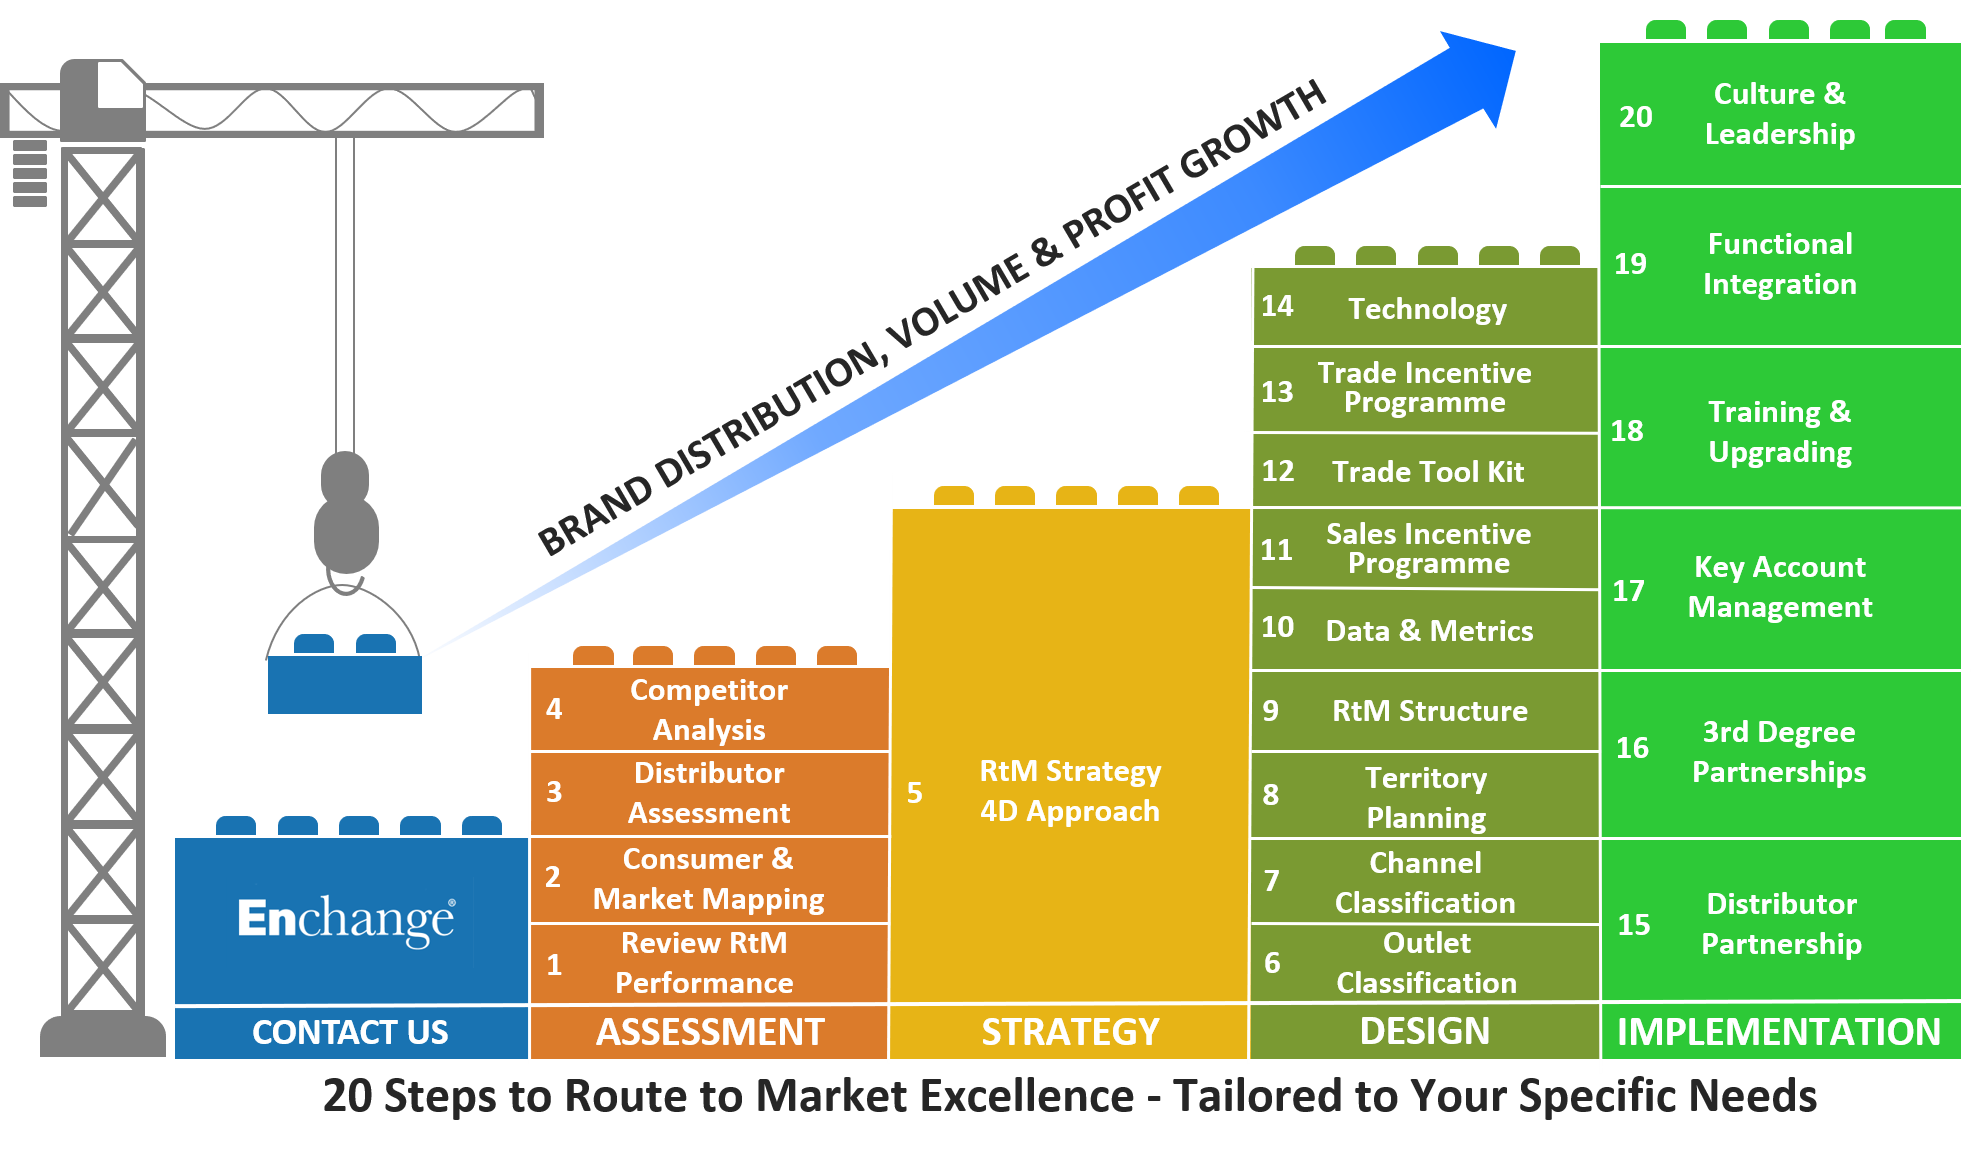 20 Steps to Route to Market Excellence